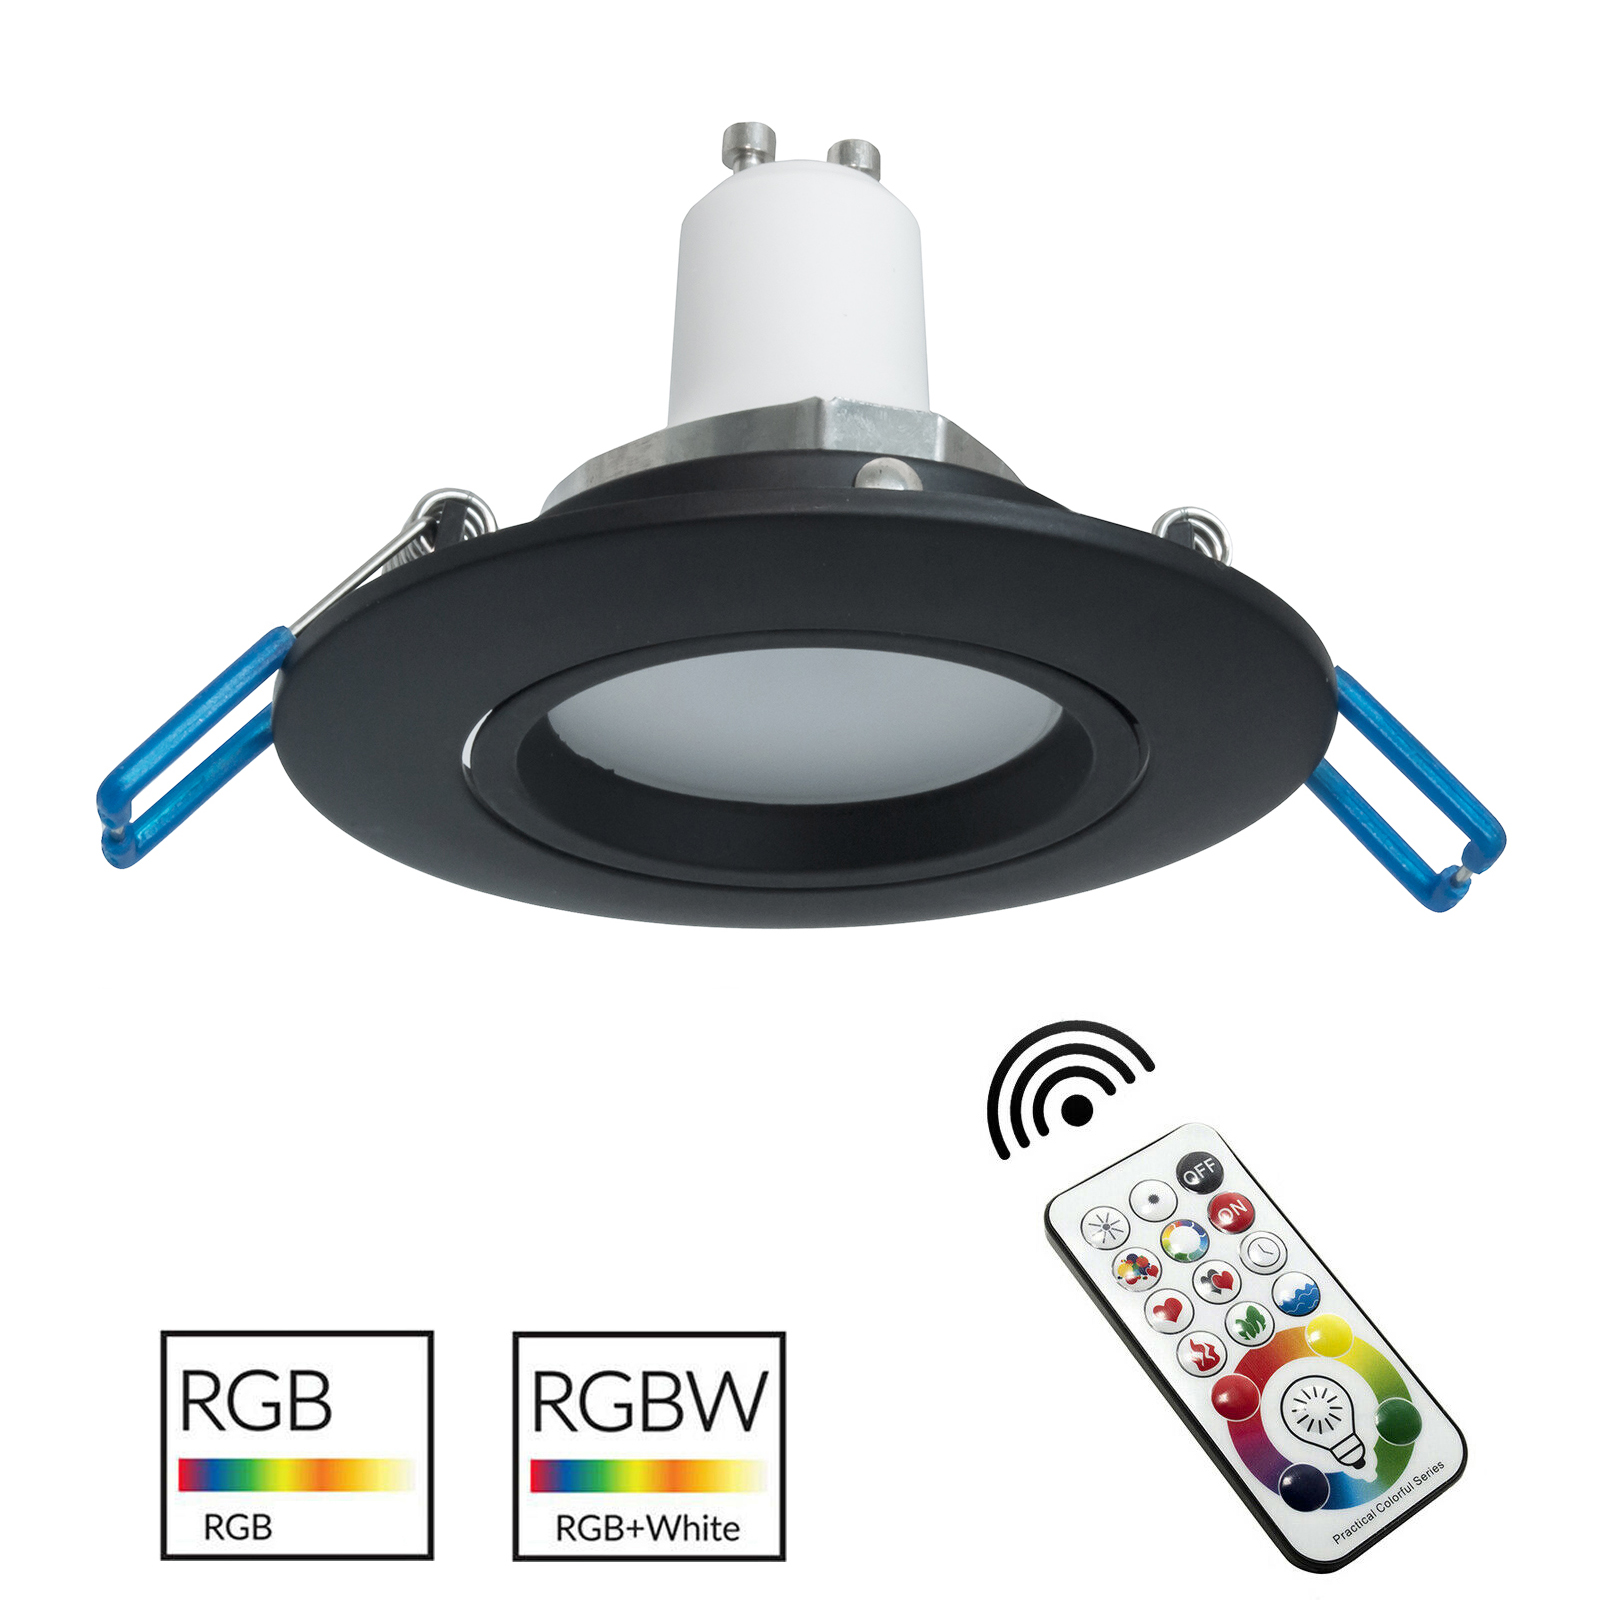 Spotlight black recessed round 7cm LED lamp RGB GU10 color therapy interior bar pub